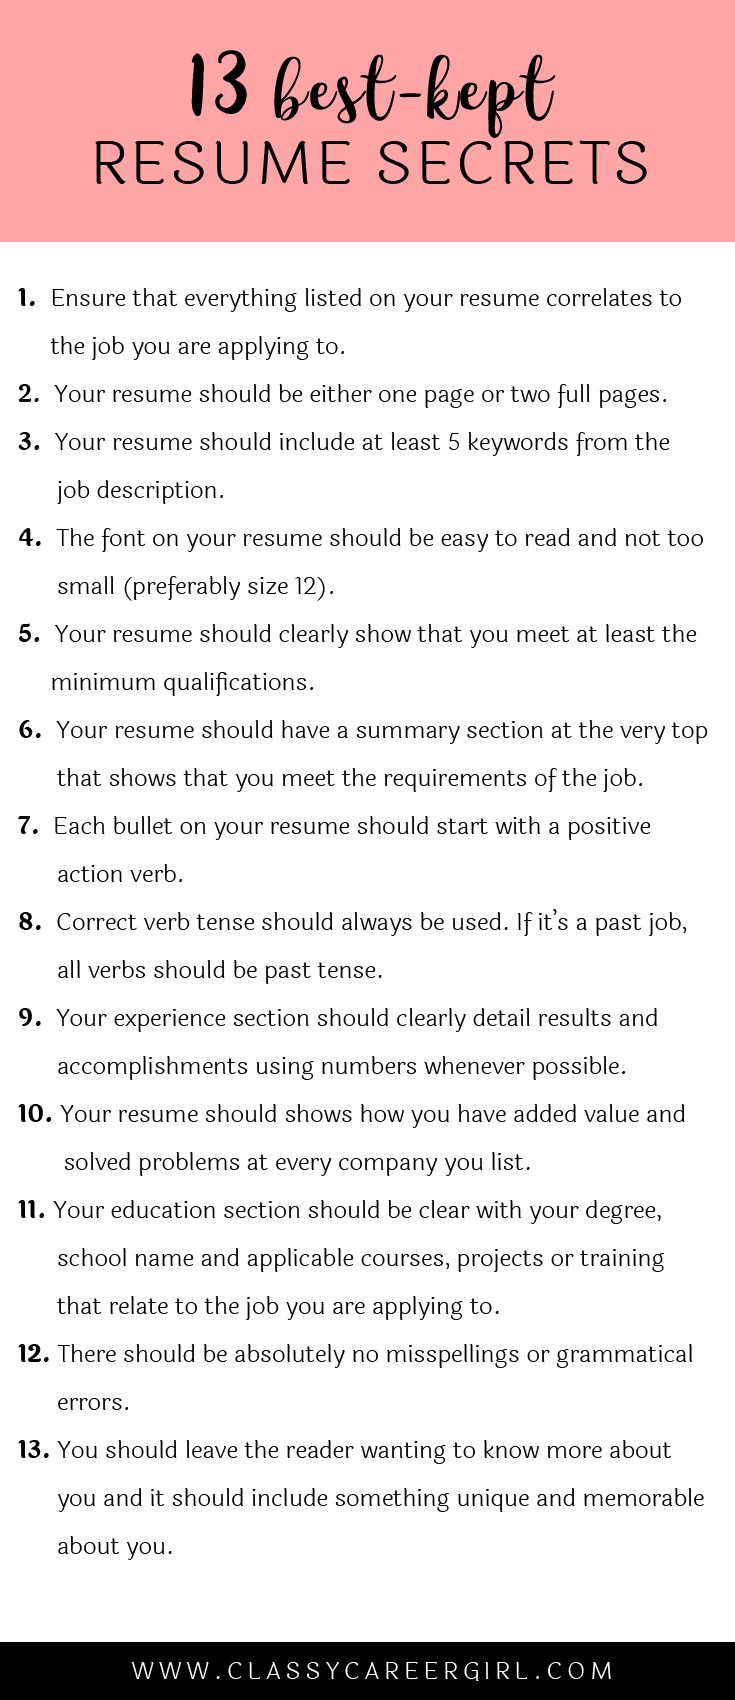 Opposenewapstandardsus  Ravishing  Ideas About Resume On Pinterest  Cv Format Resume Cv And  With Goodlooking Some Hiring Managers Will Toss Your Resume Out If You Dont Know These  With Astonishing Resumes For Dummies Also Objective For Resume Examples In Addition Funny Resume And New Grad Nursing Resume As Well As Examples Of Skills For Resume Additionally Resume Bullet Points From Pinterestcom With Opposenewapstandardsus  Goodlooking  Ideas About Resume On Pinterest  Cv Format Resume Cv And  With Astonishing Some Hiring Managers Will Toss Your Resume Out If You Dont Know These  And Ravishing Resumes For Dummies Also Objective For Resume Examples In Addition Funny Resume From Pinterestcom